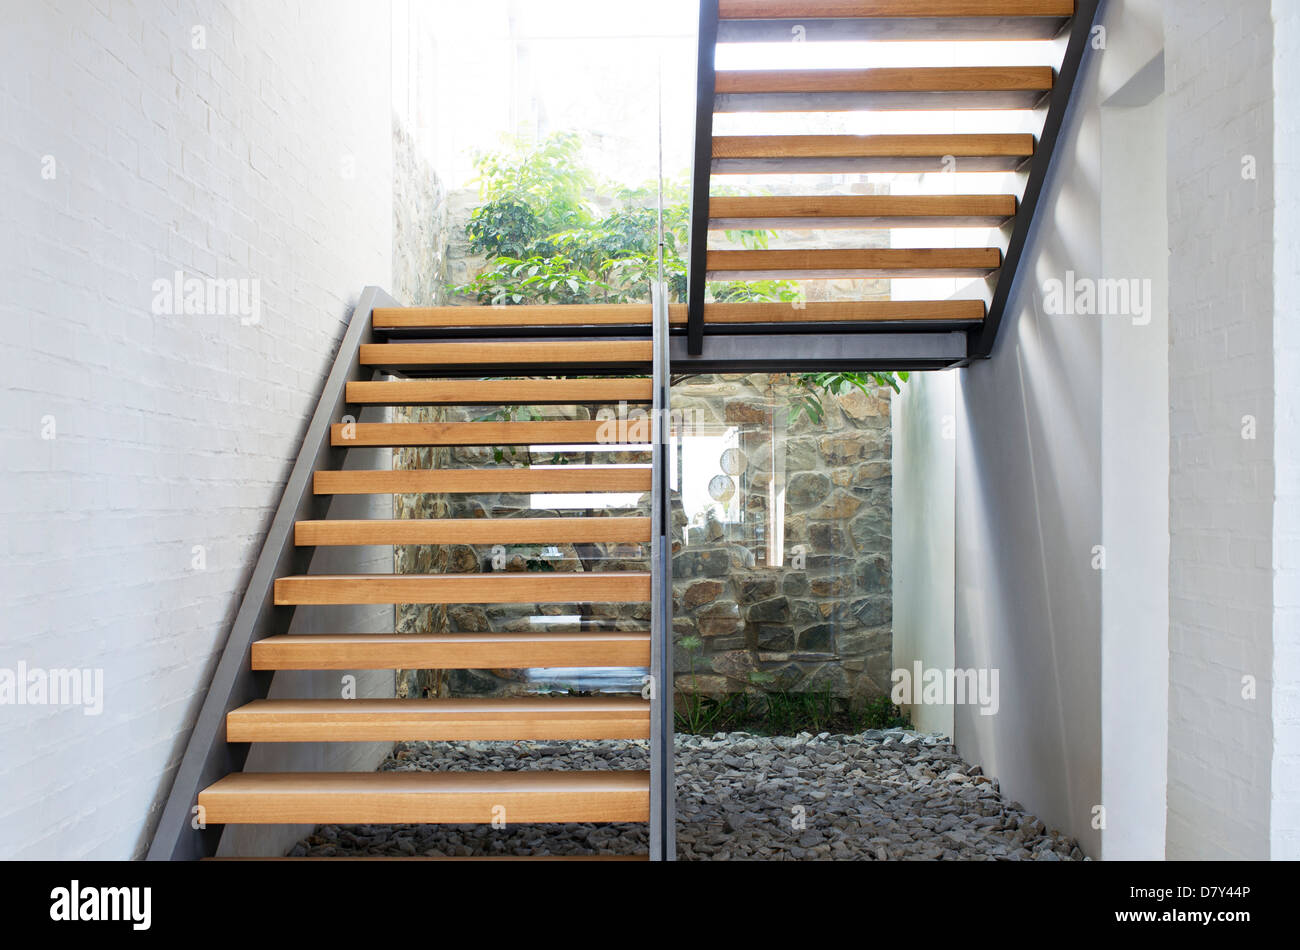 Staircase of modern house - Stock Image